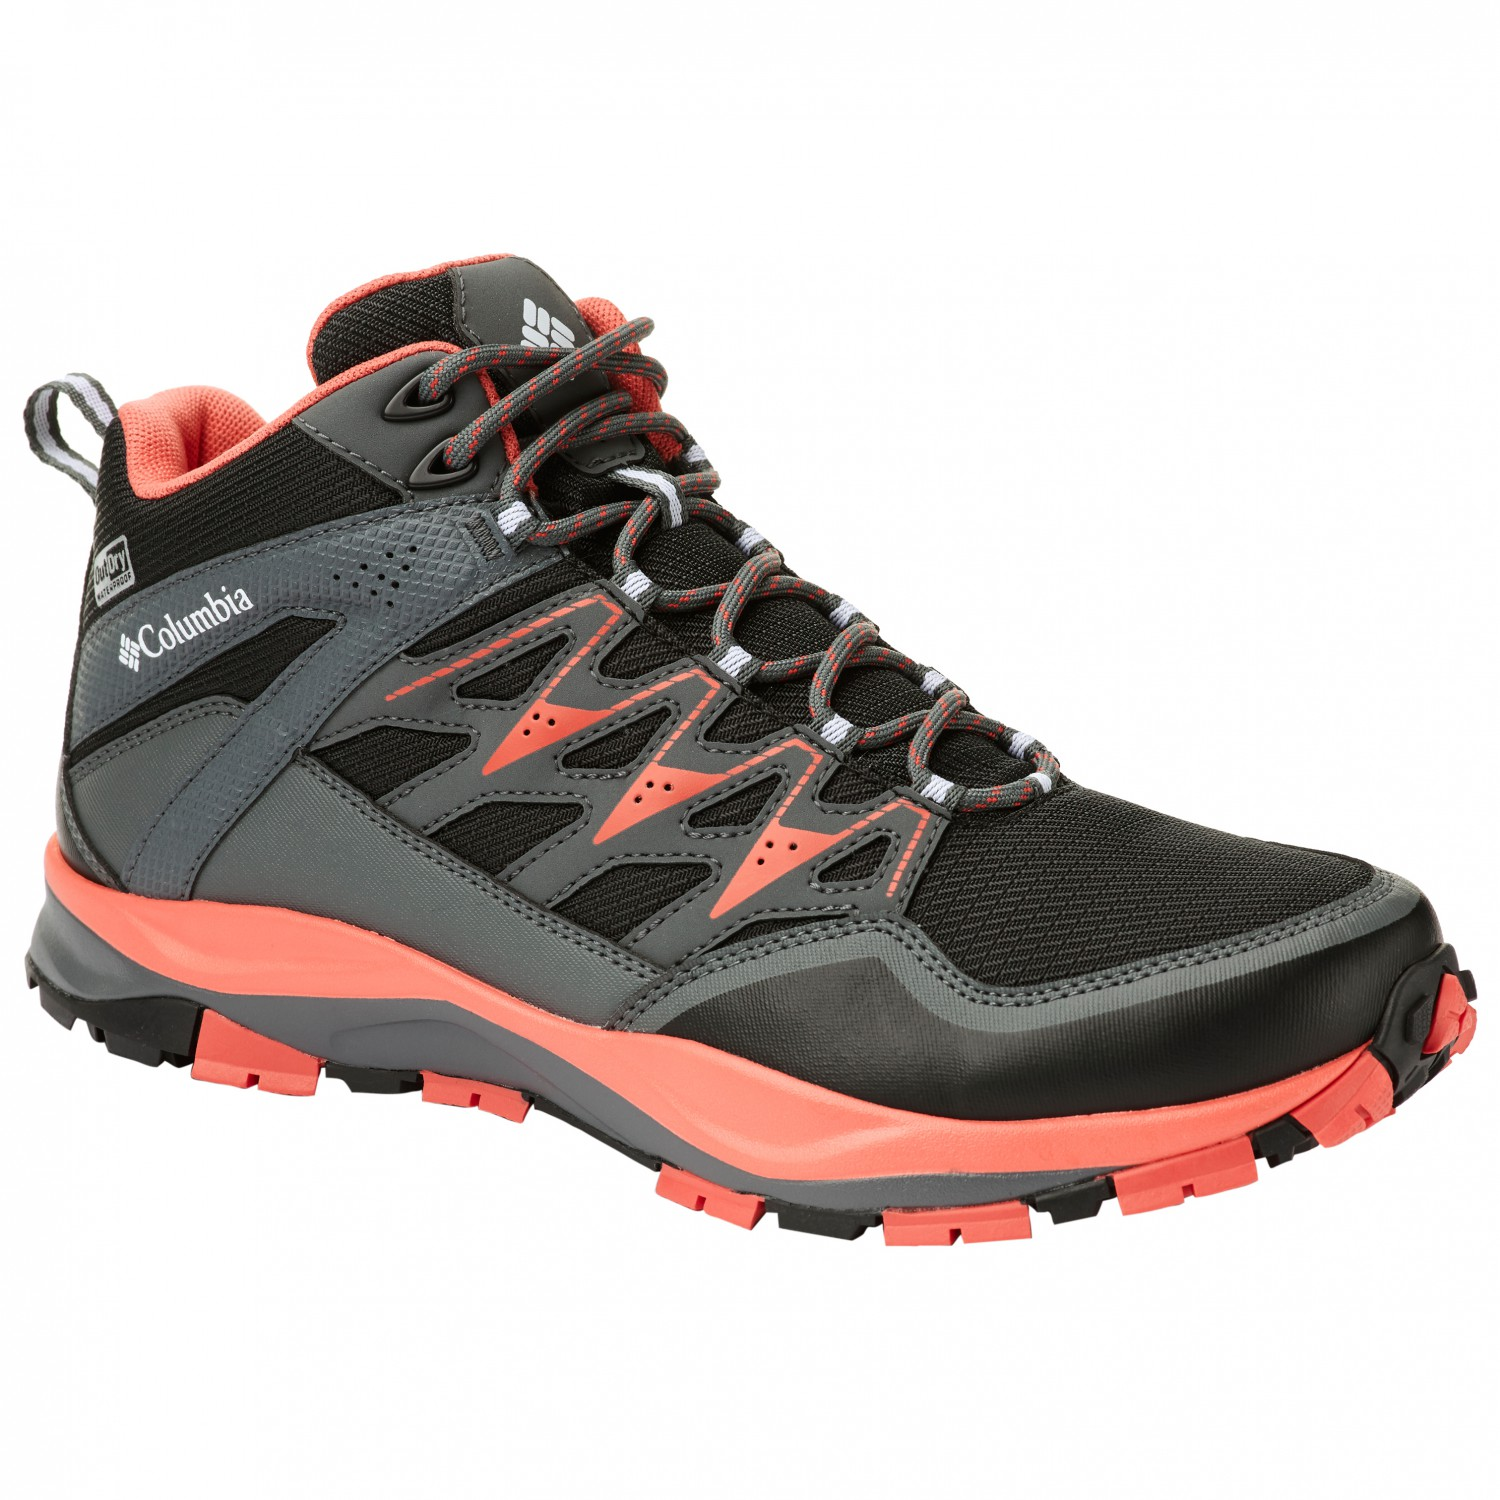 0af276798b08e Columbia - Women's Wayfinder Mid Outdry - Walking boots - Black / Red Coral  | 6 (US)